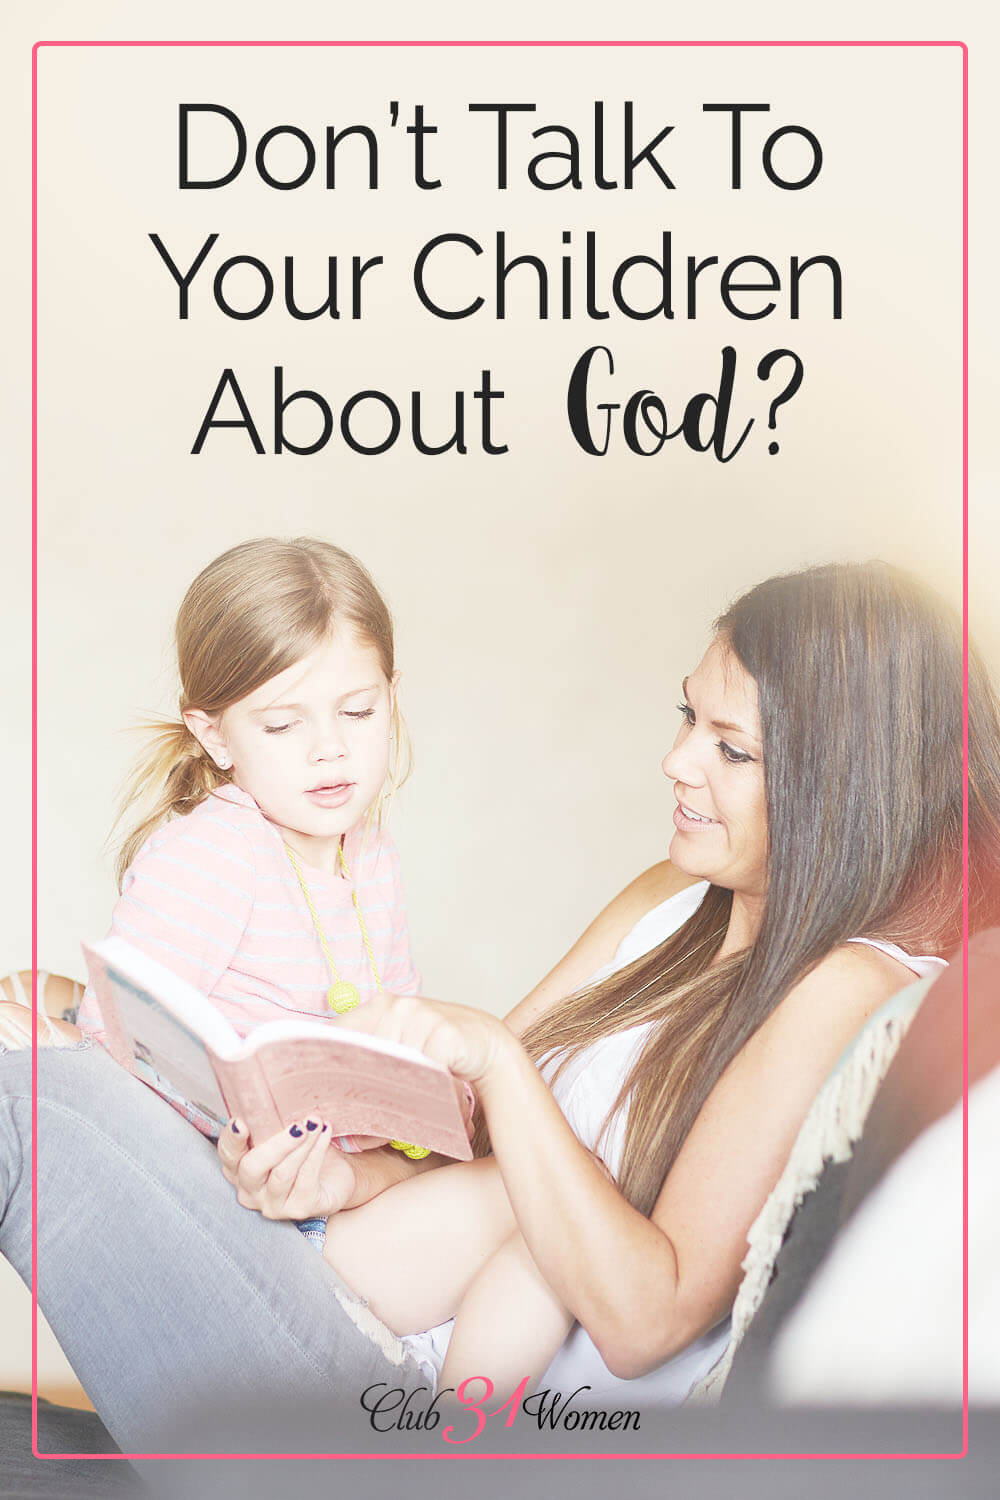 If you feel your kids are tuning you out or they don't want to hear what you have to say, don't be discouraged. Instead, talk to God about your kids! via @Club31Women